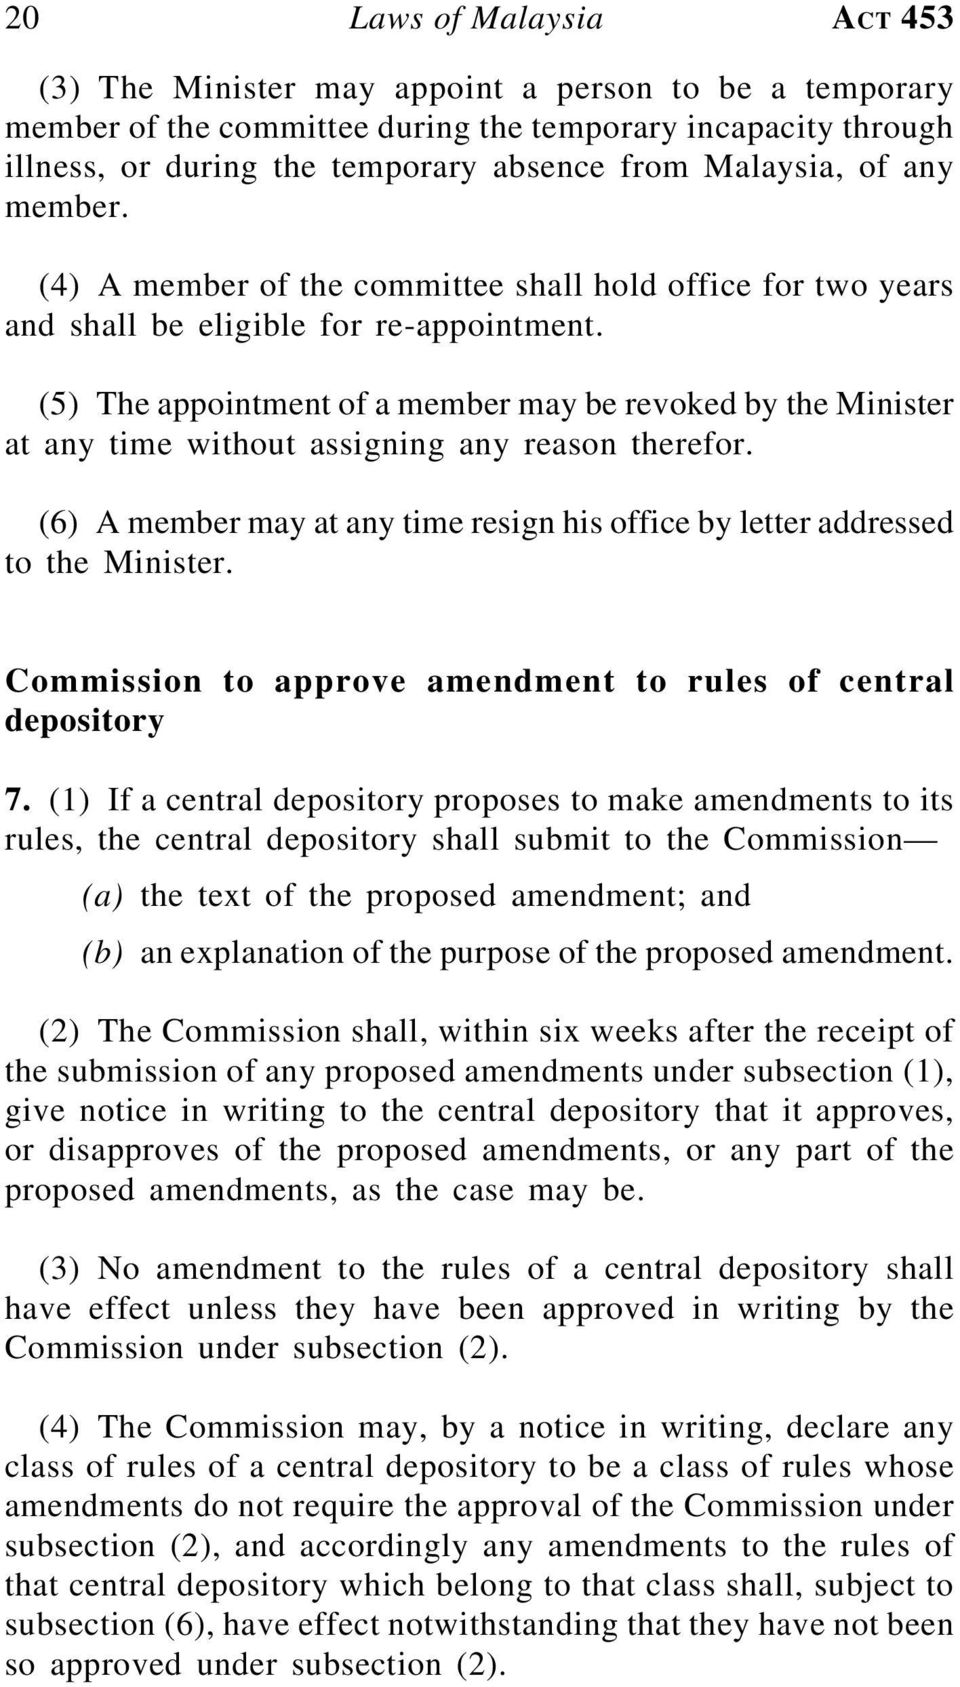 (5) The appointment of a member may be revoked by the Minister at any time without assigning any reason therefor. (6) A member may at any time resign his office by letter addressed to the Minister.